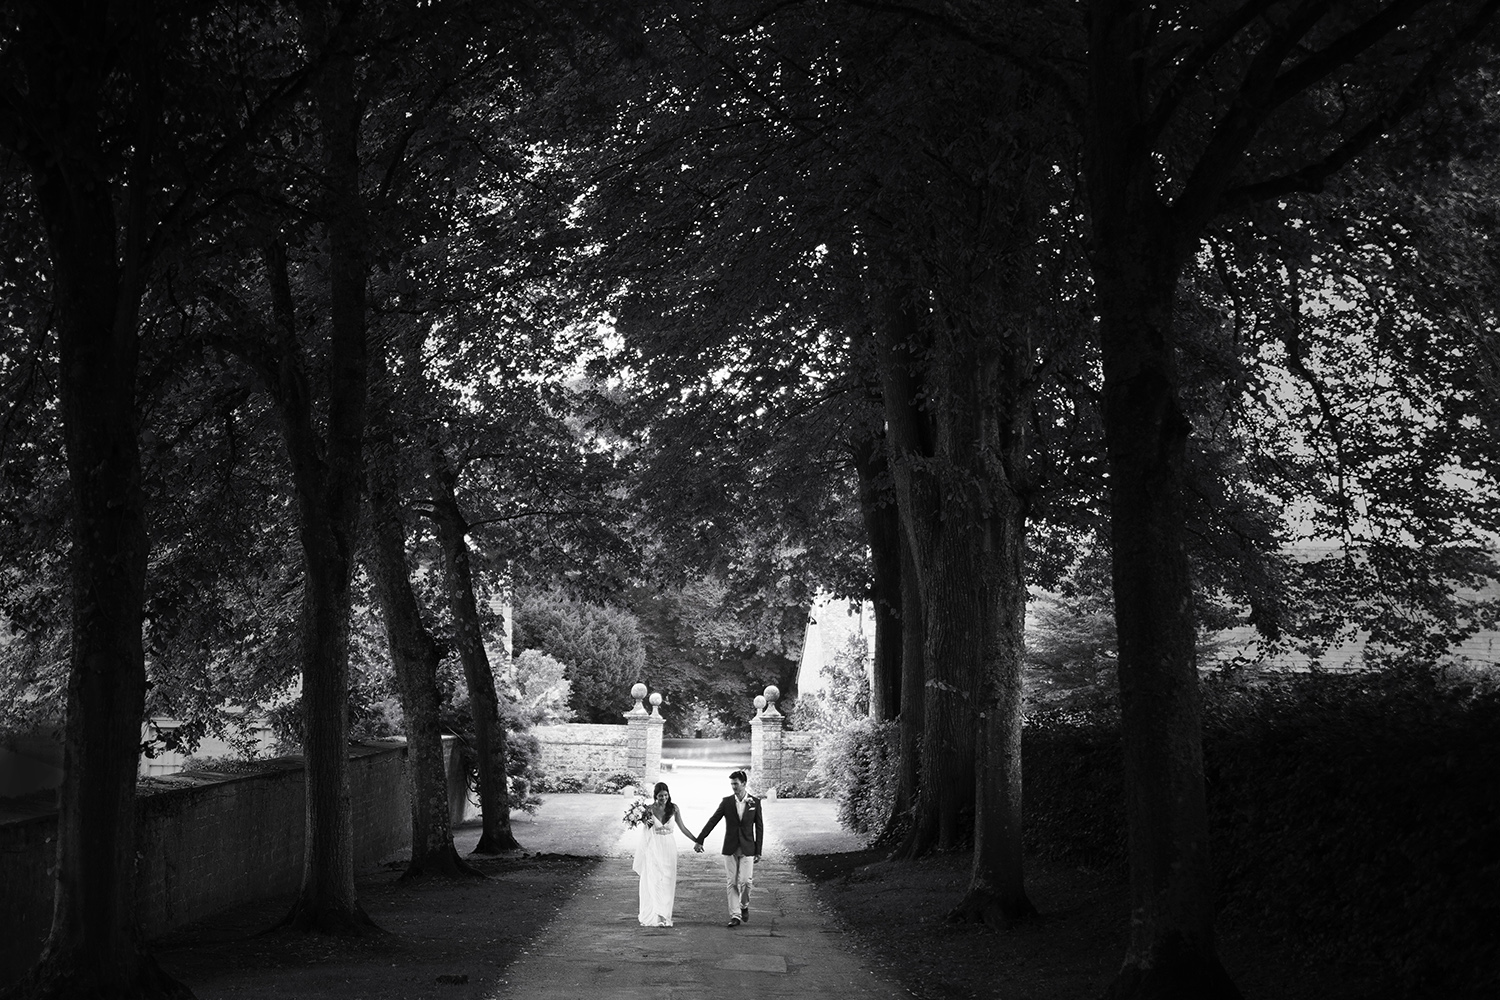 Wedding photography from a wedding at Mapperton House, Dorset.